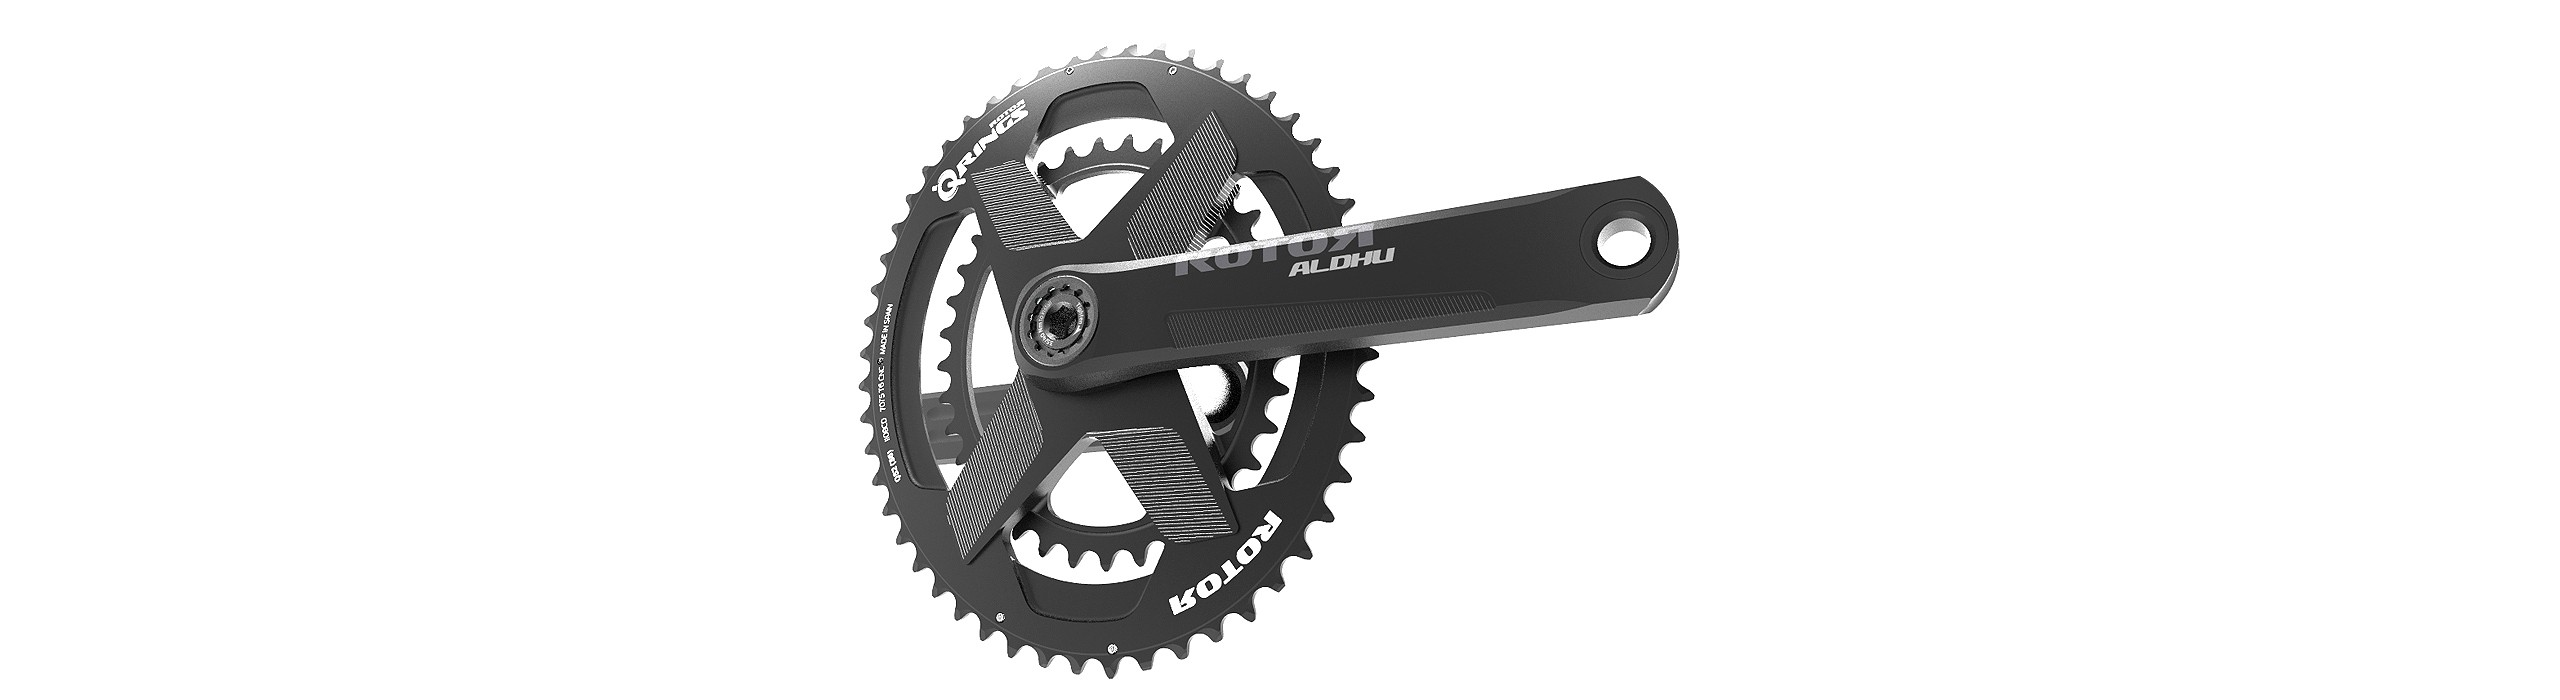 Aldhu DM Crankset KIT (30 mm)